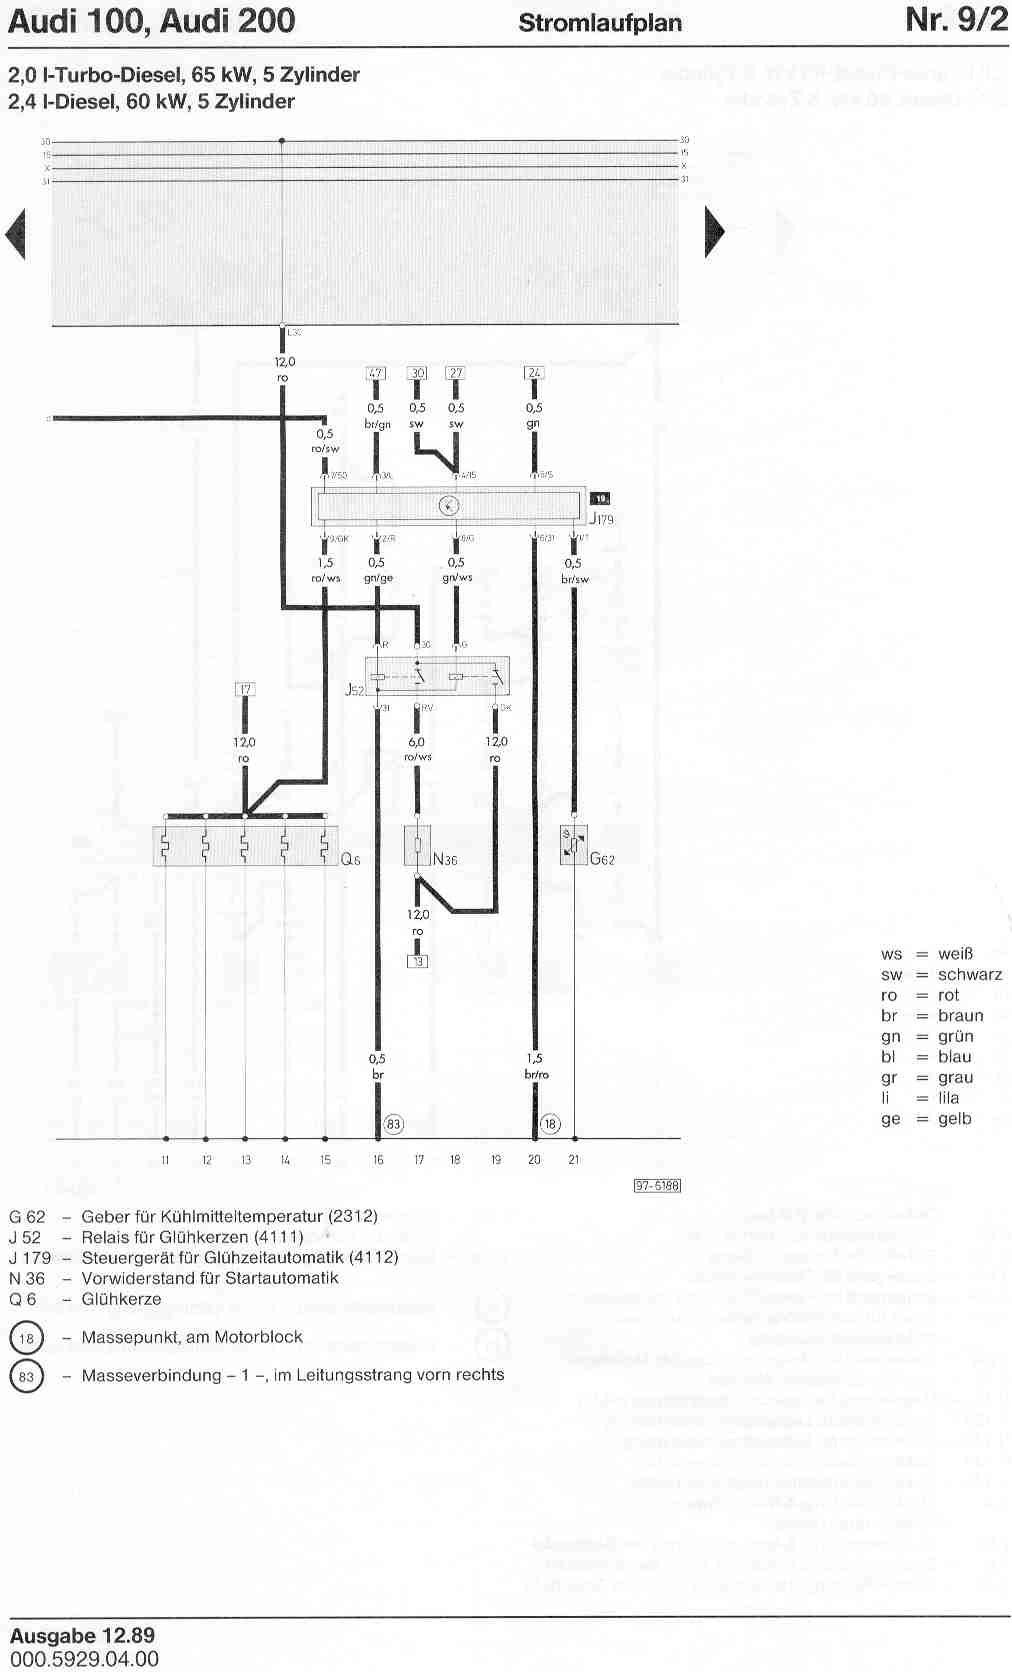 3d03 1 65 kw wire diagrams wiring diagrams  at nearapp.co